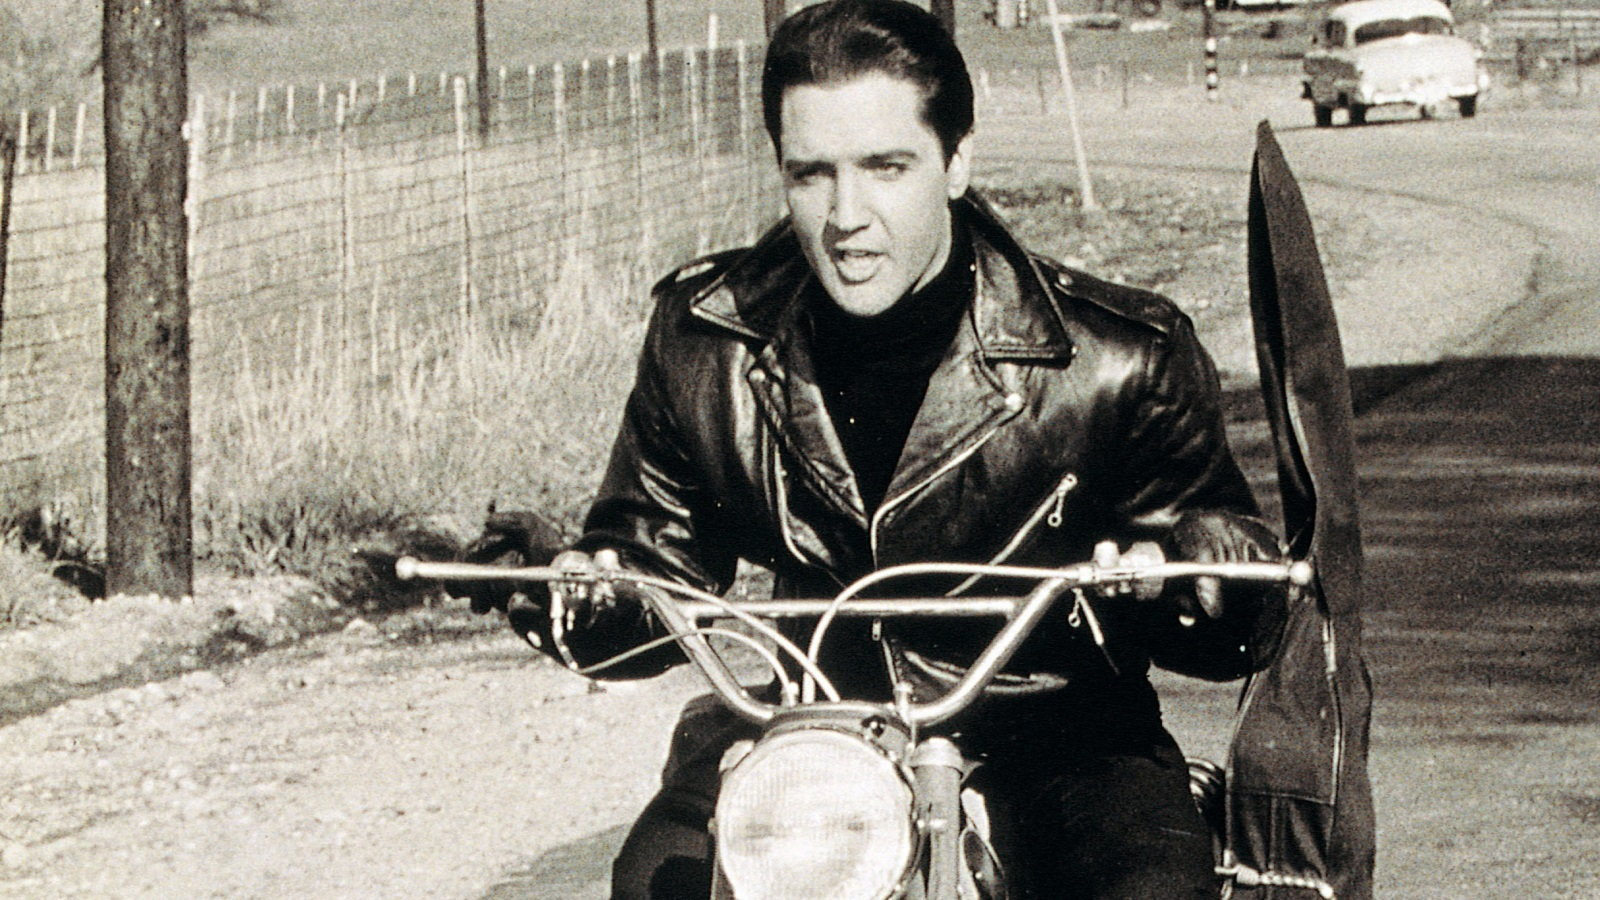 Rare 1-Of-30 Harley Elvis Presley Edition up for Grabs